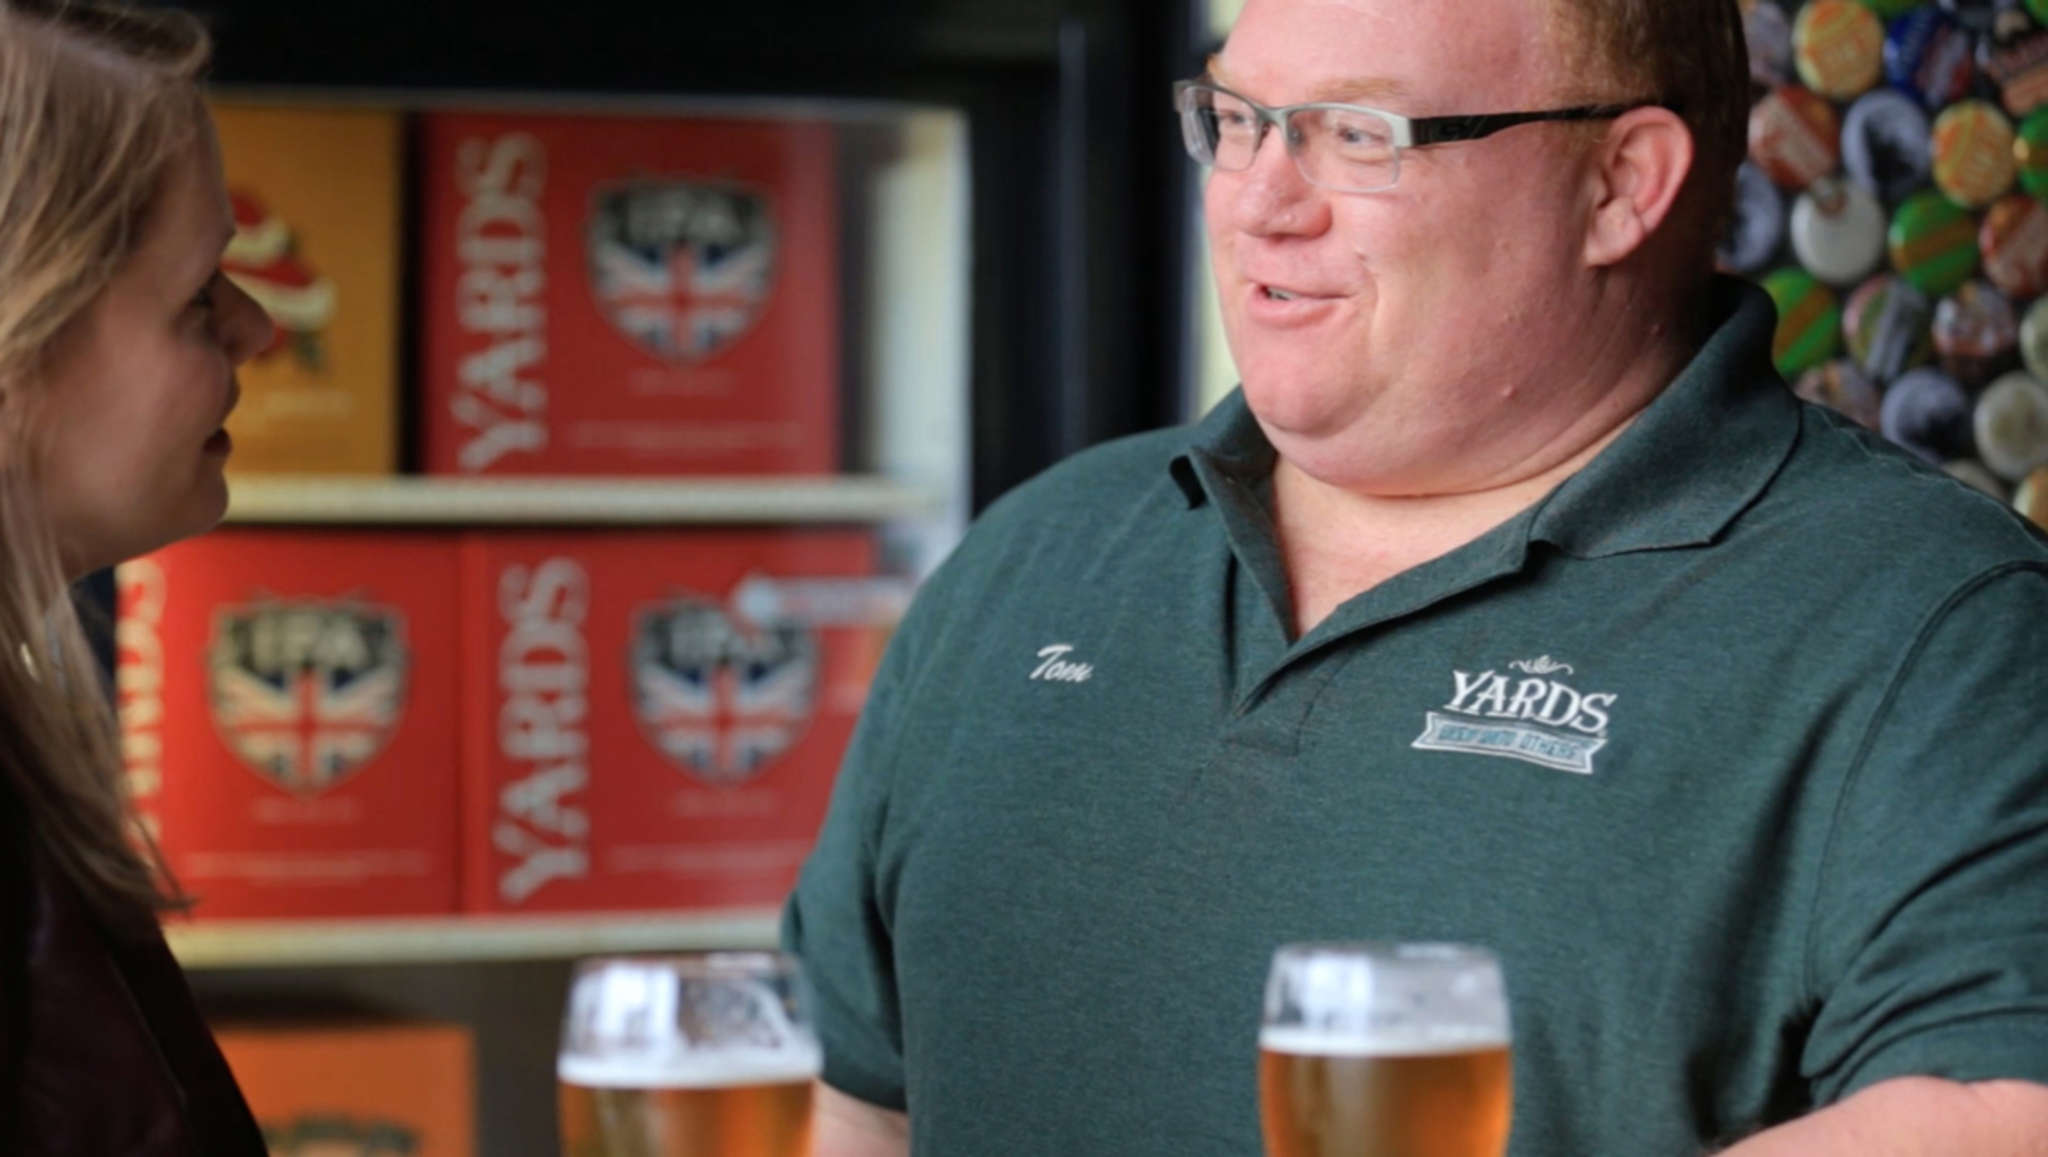 Sarah DeLaurentis of ActionAIDS with Yards Brewing Co. president Tom Kehoe in a Yards video.